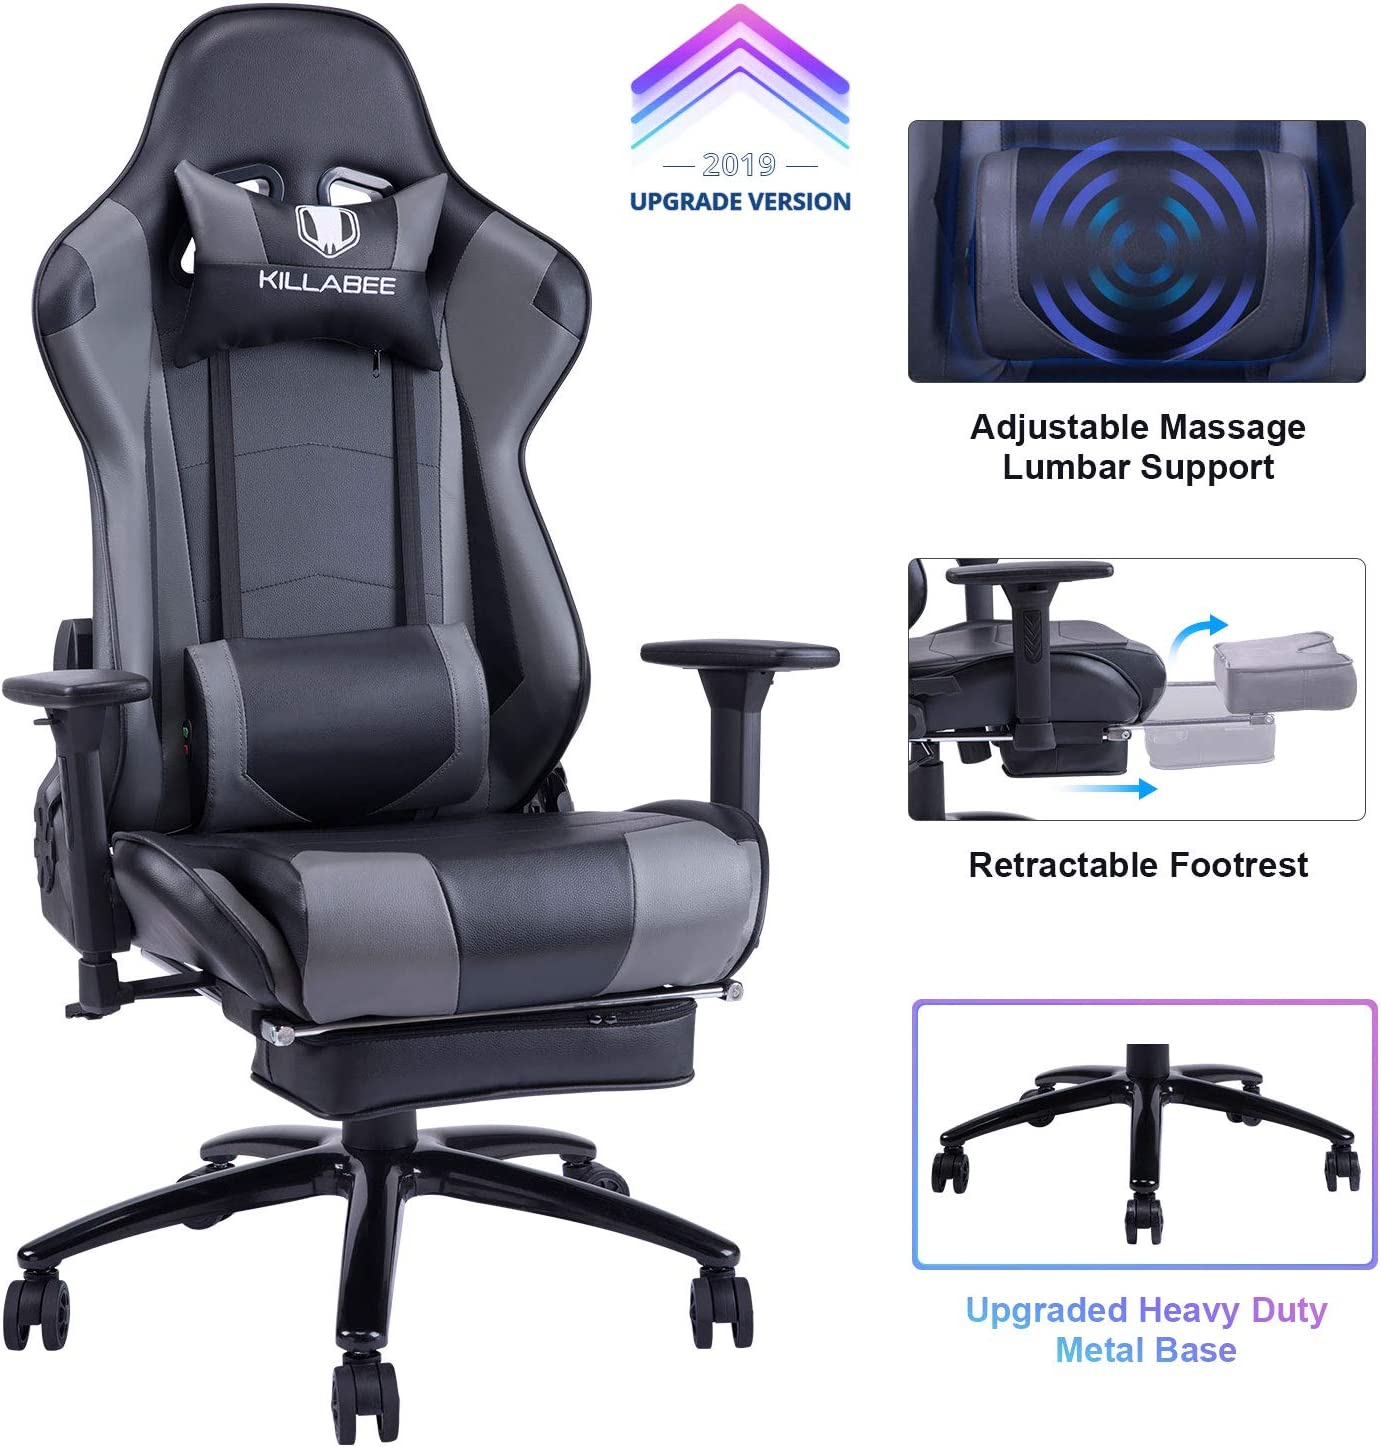 Desk Chairs Home Adjustable Back Angle And Retractable Footrest Ergonomic High Back Leather Racing Executive Computer Desk Office Chair Fantasylab Big Tall 400lb Memory Foam Reclining Gaming Chair Metal Base